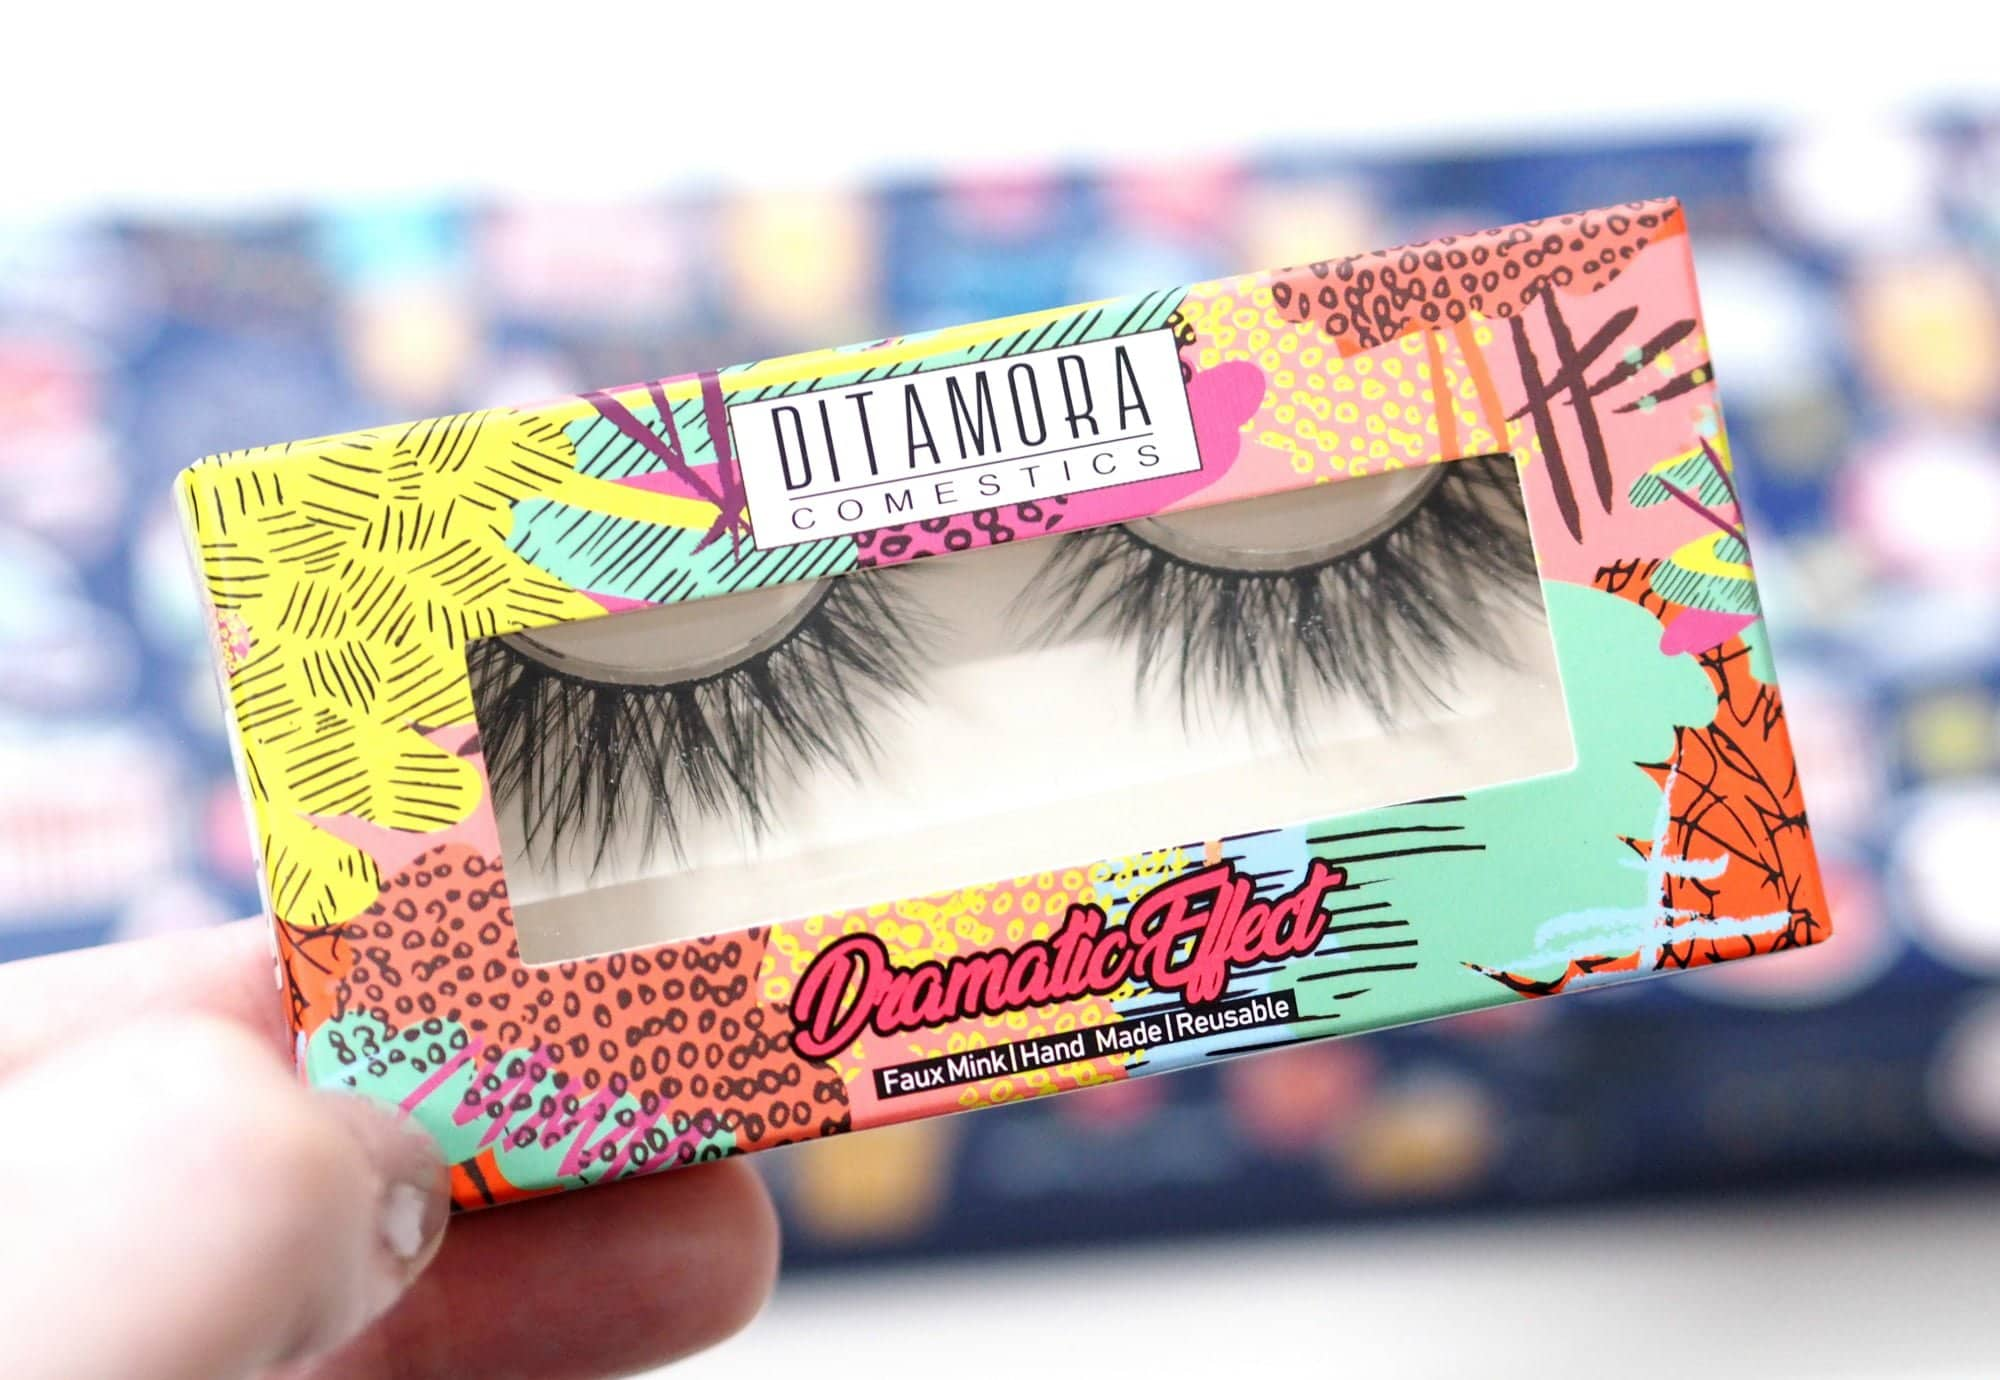 Ditamora Faux Mink Lashes Dramatic Box